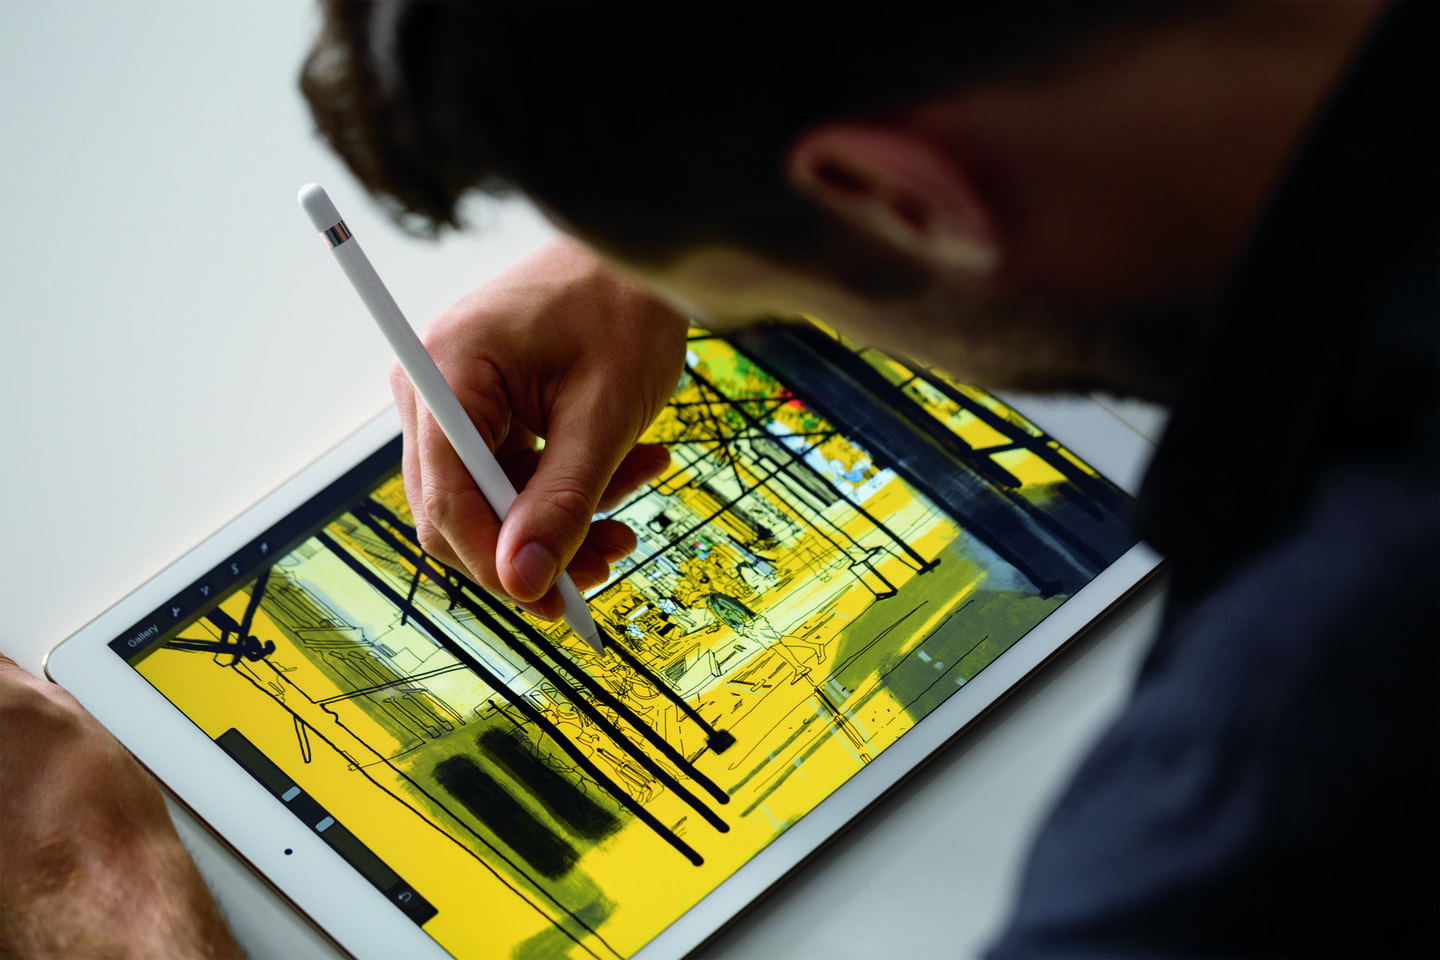 second-generation 12.9-inch iPad Pro